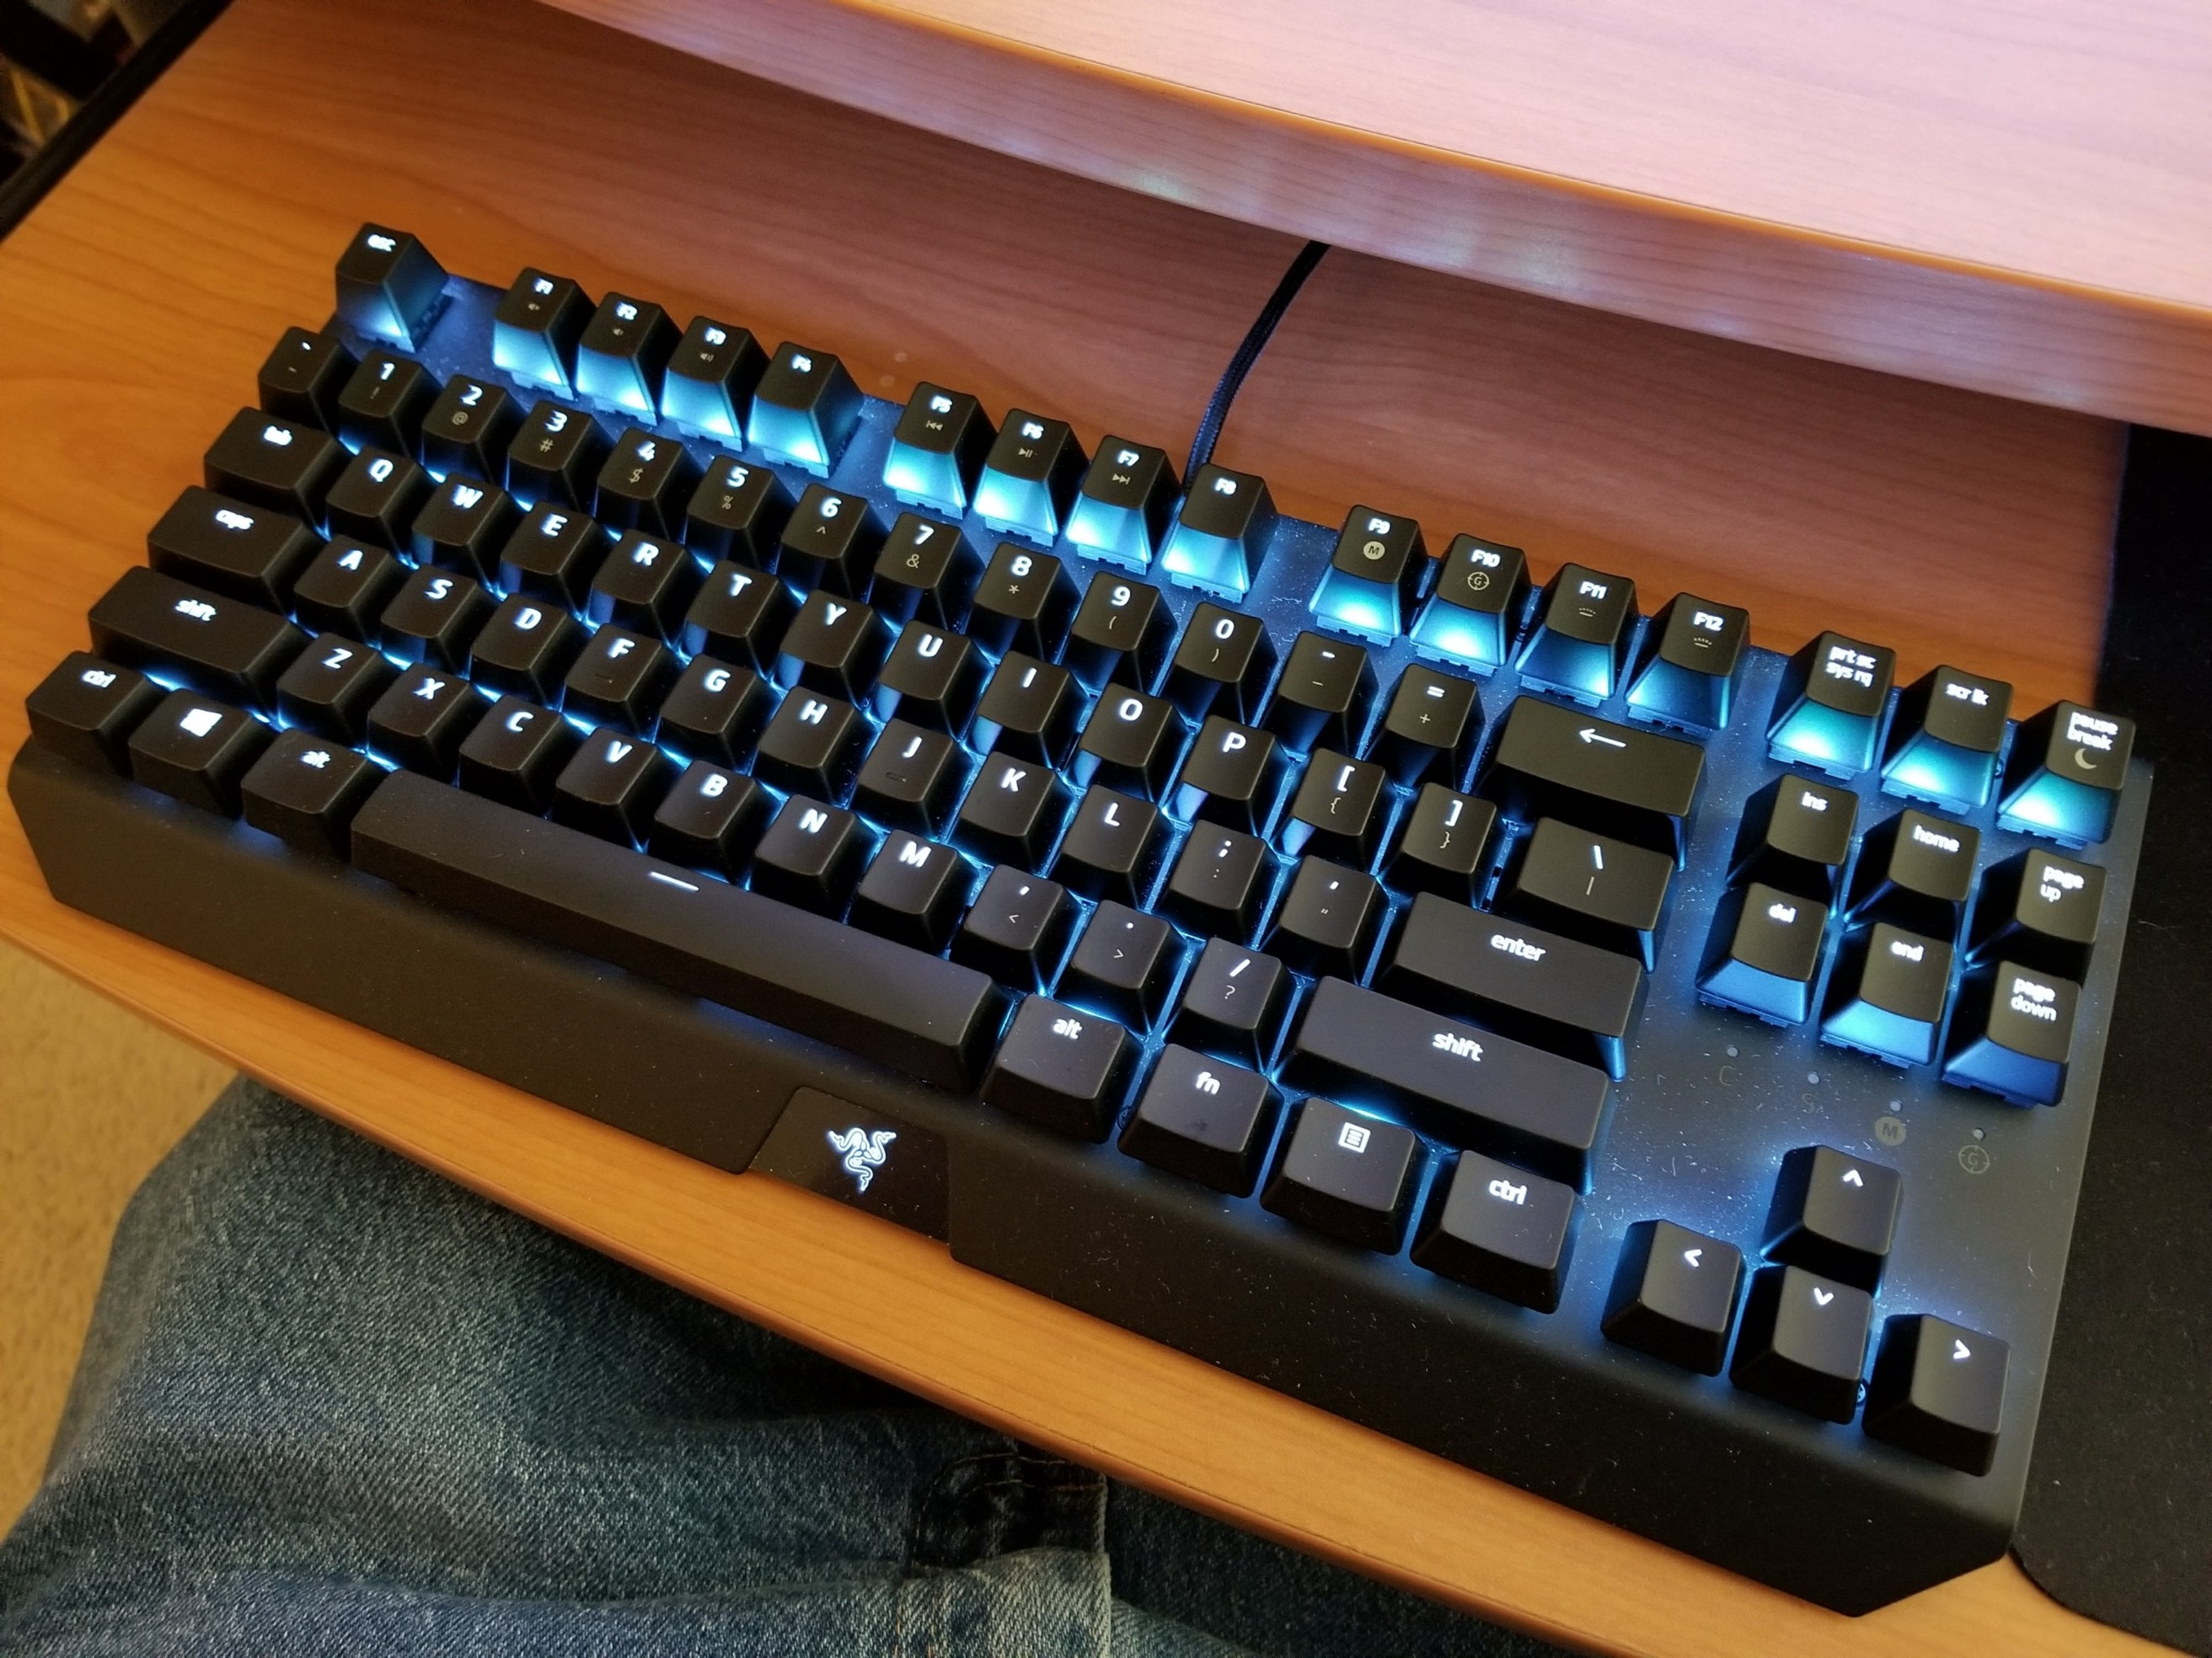 6439395747e The Blackwidow X Chroma TE is great for gaming…and for typing I can't  really decide if I love it or if I hate it.